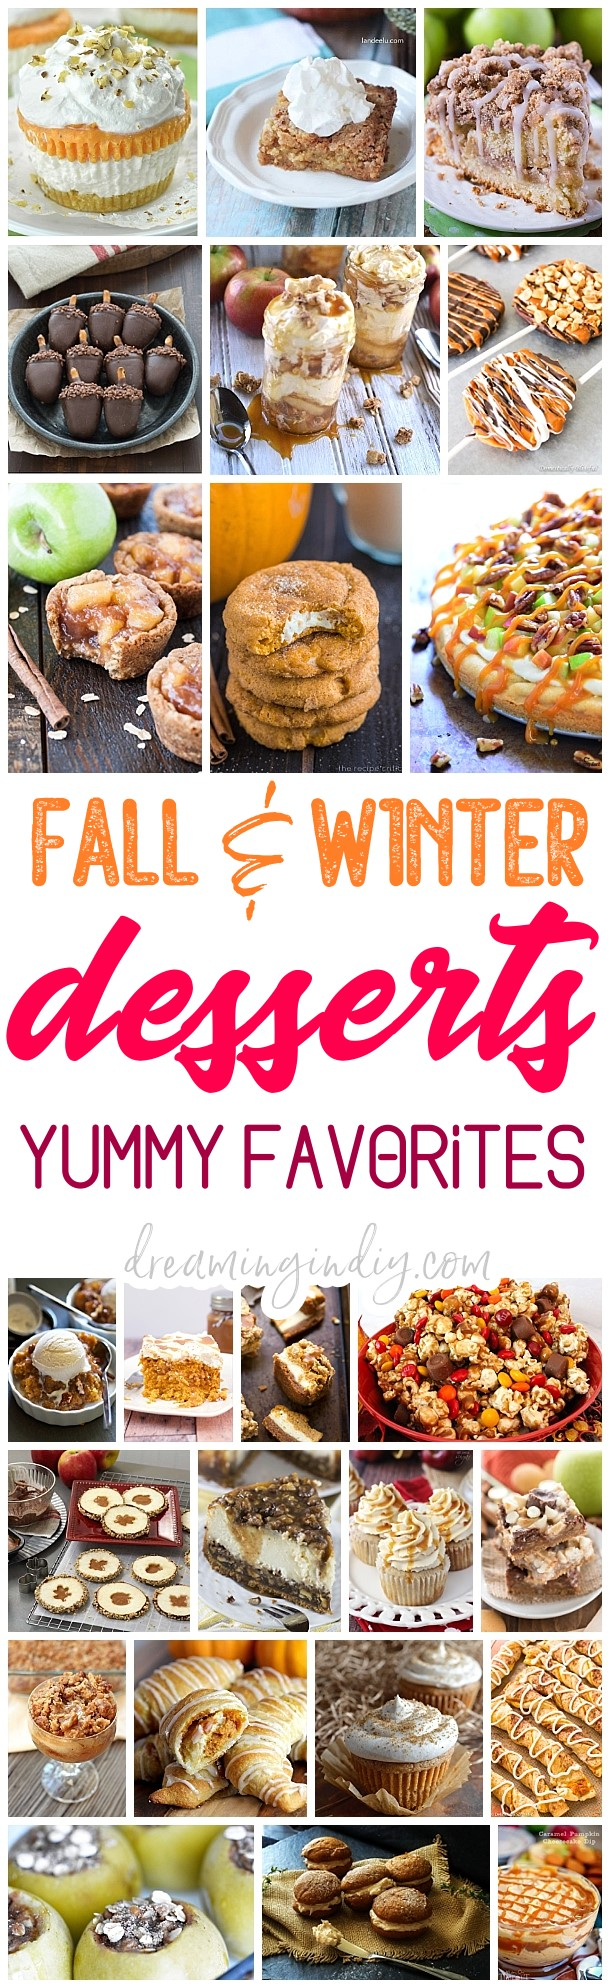 The BEST Easy Fall Harvest, Autumn Holidays and Winter Party Desserts & Treats Recipes Perfect for Your Thanksgiving Dessert Table and Christmas Holiday Party Trays! Pumpkin, Cinnamon, Apple and Caramel flavored favorites - Dreaming in DIY #falldesserts #winterdesserts